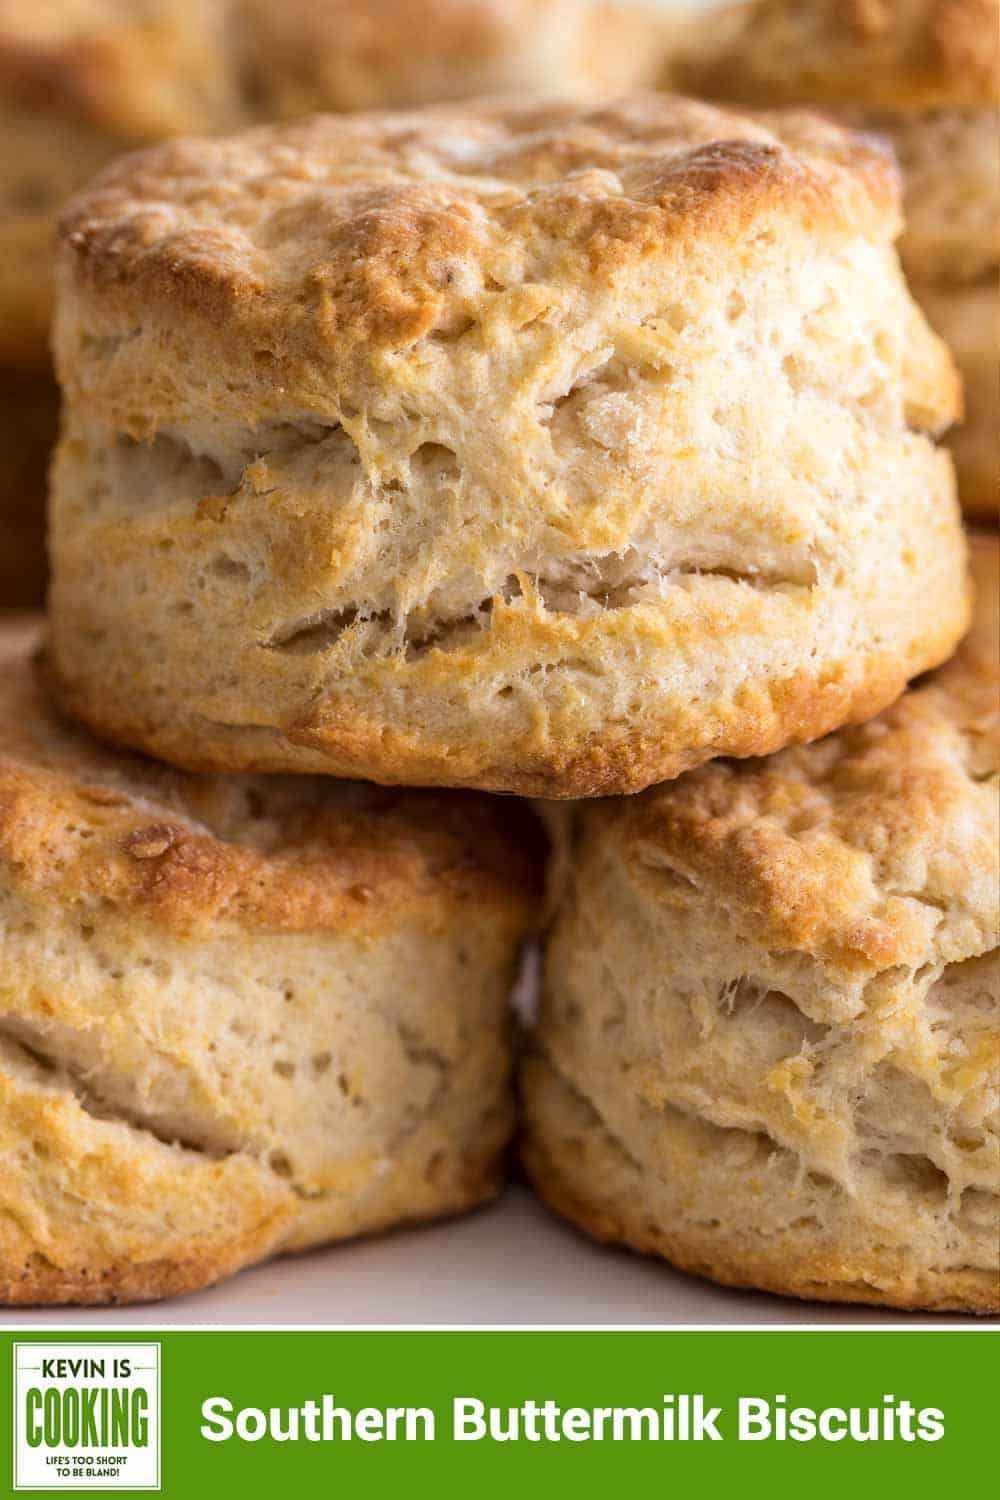 My Southern Buttermilk Biscuits Use Self Rising Flour Shredded Frozen Butter And Butte Southern Buttermilk Biscuits Buttermilk Biscuits Bread Recipes Homemade